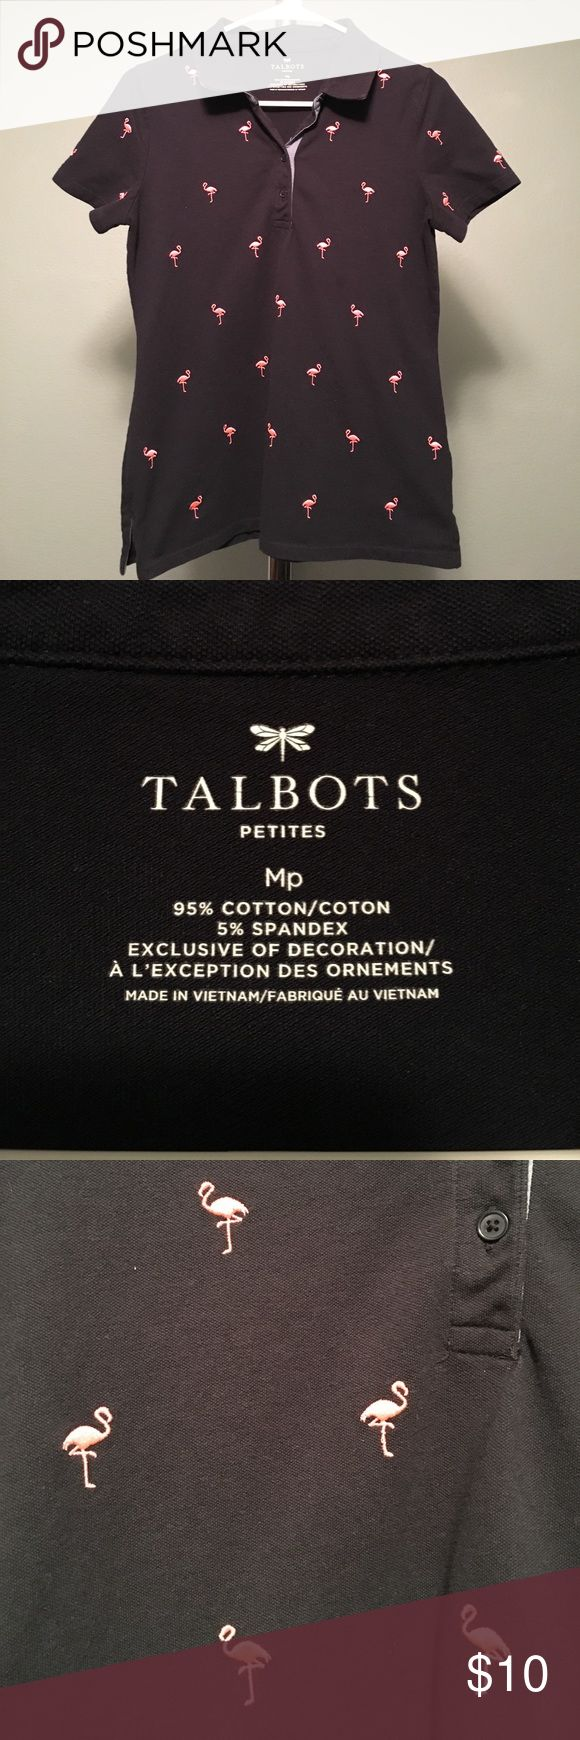 Talbots Pink and Navy Flamingo Polo Collared Shirt This fun polo is from Talbots and is size petite medium. It's navy with pink embroiled flamingos. Worn only a few times. Comes from a smoke and pet free home. Talbots Tops Tees - Short Sleeve